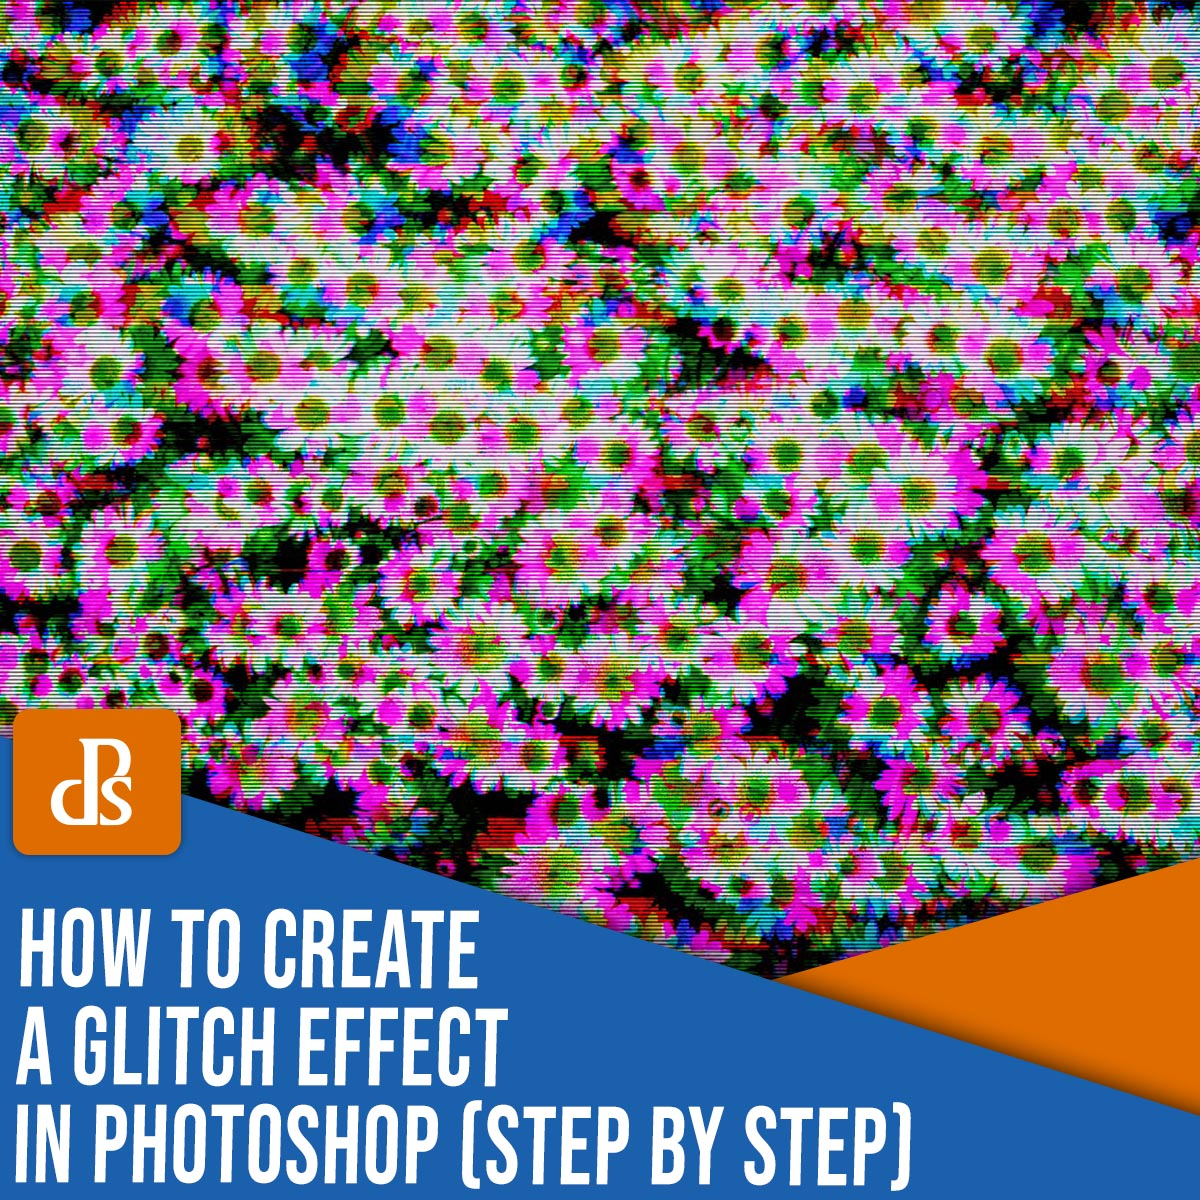 how to create a glitch effect in Photoshop step by step